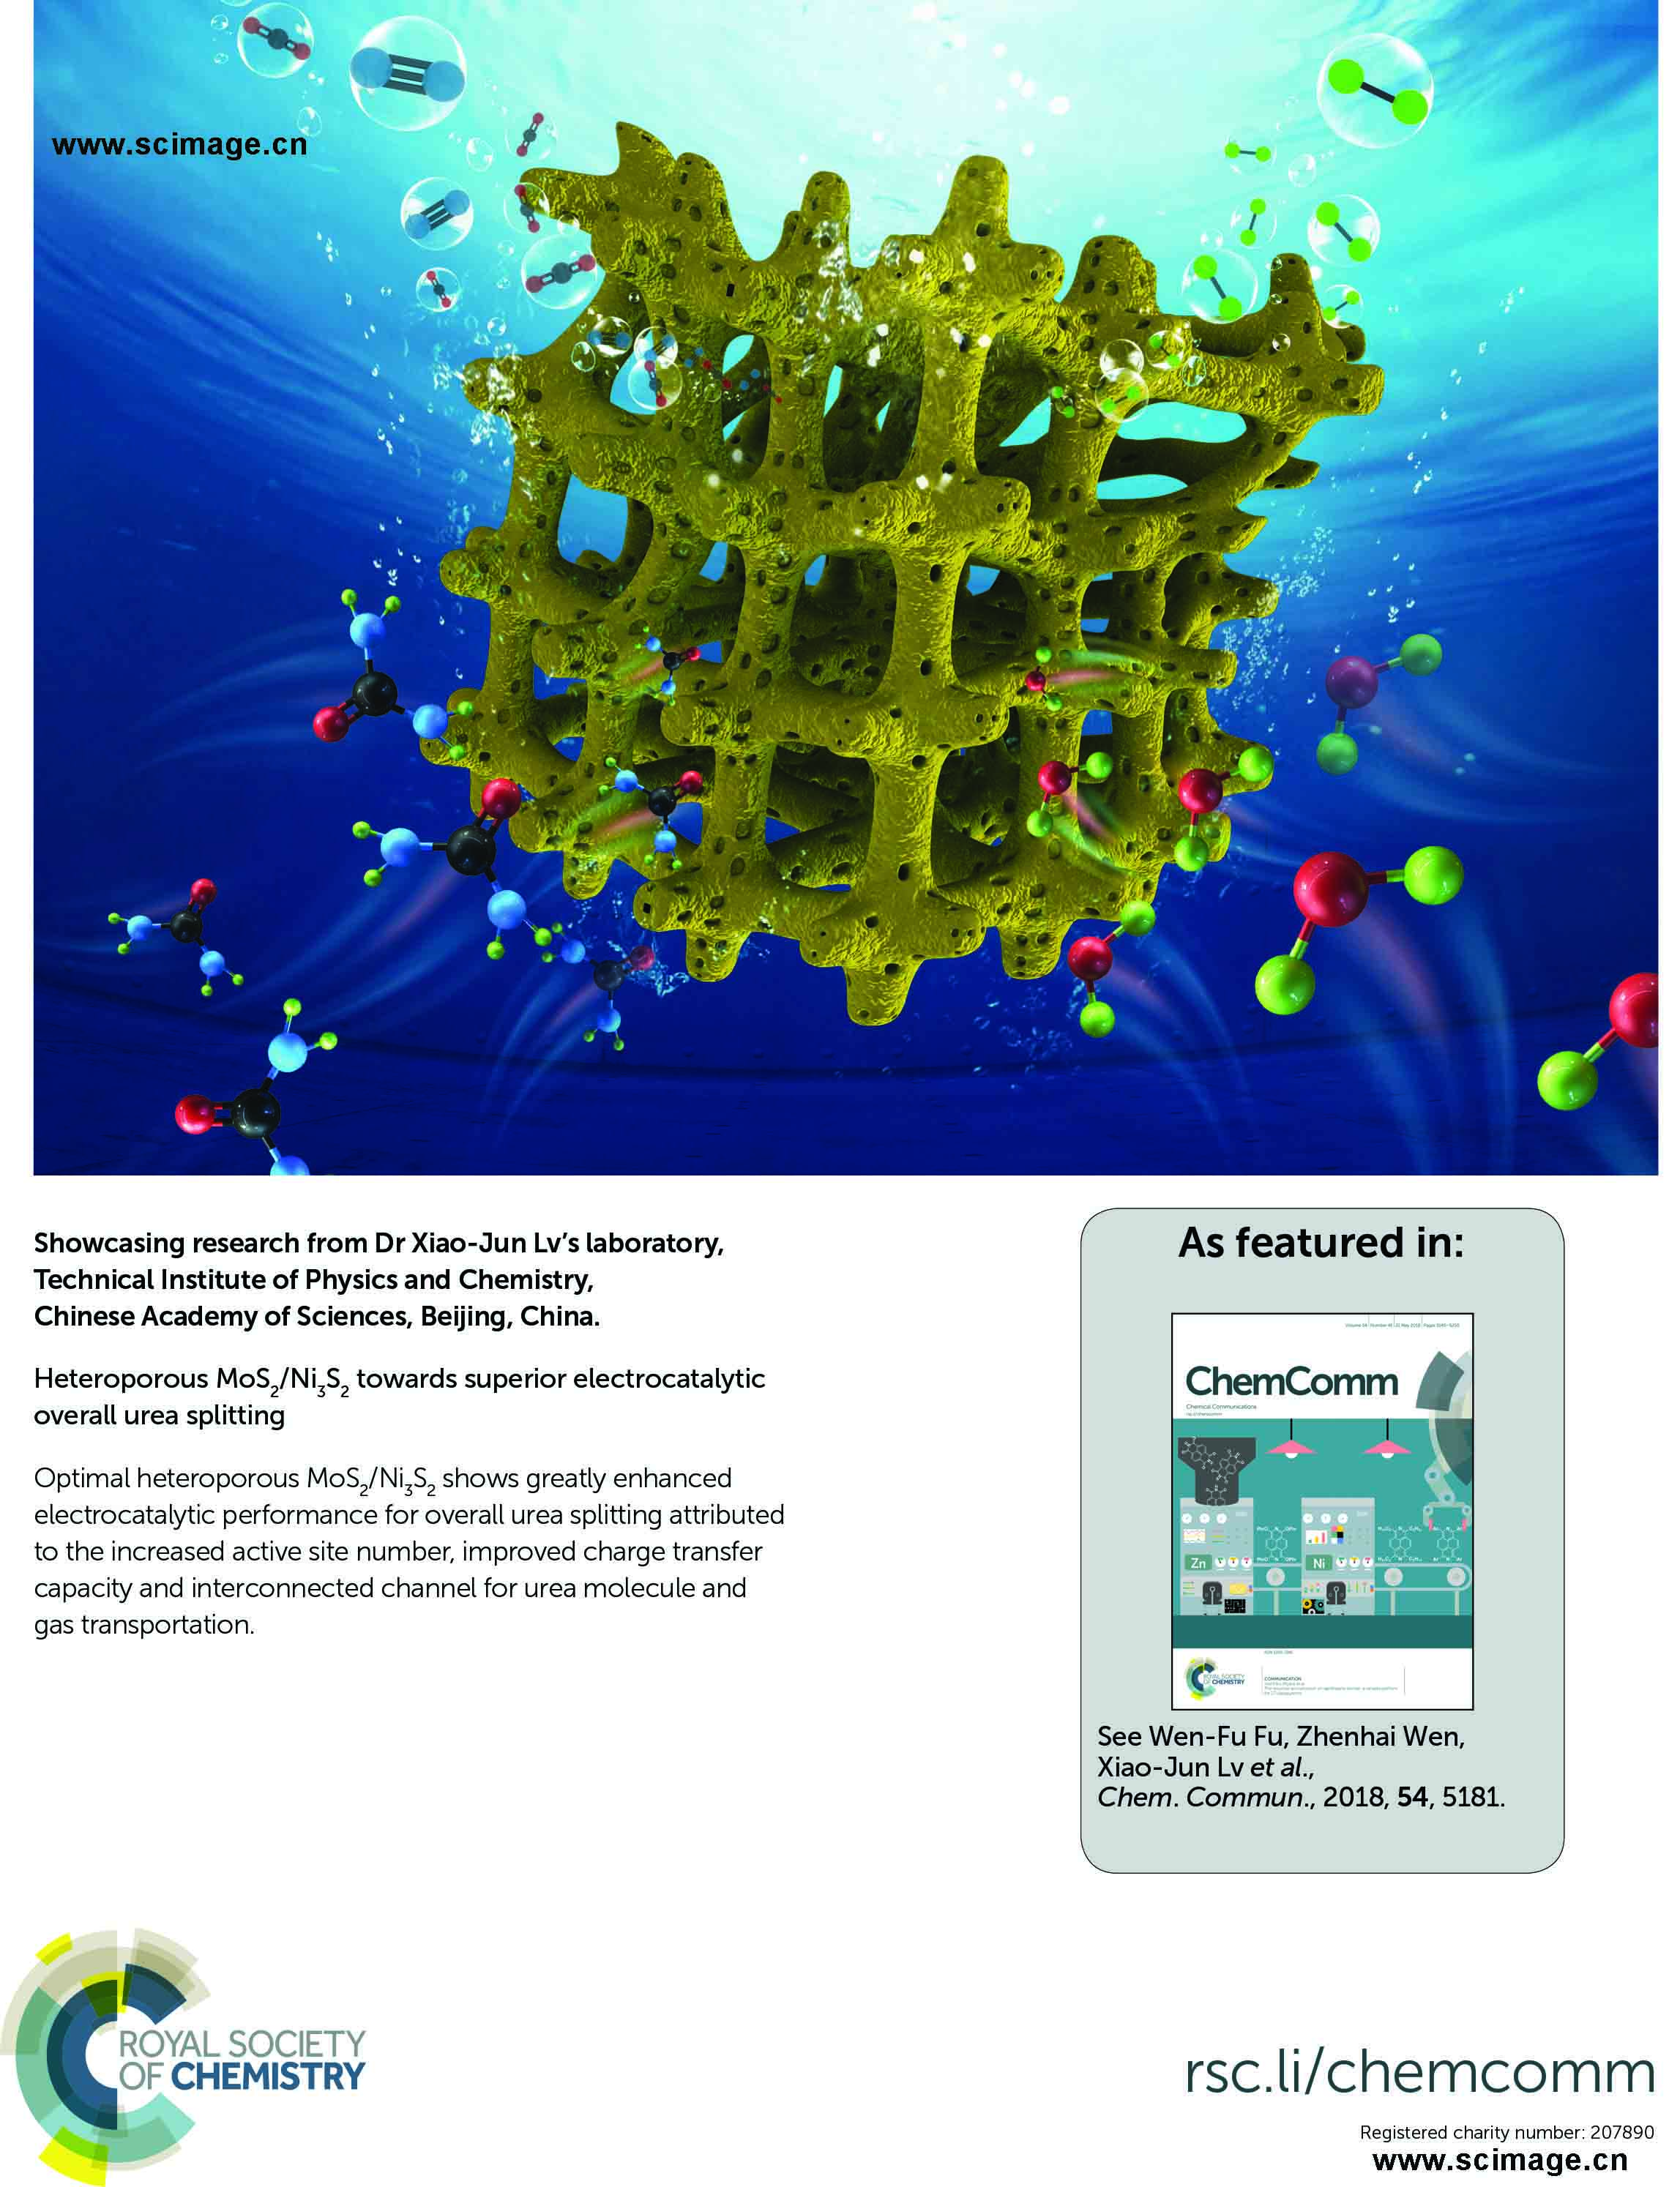 Heteroporous MoS2/Ni3S2 towards superior electrocatalytic overall urea splitting